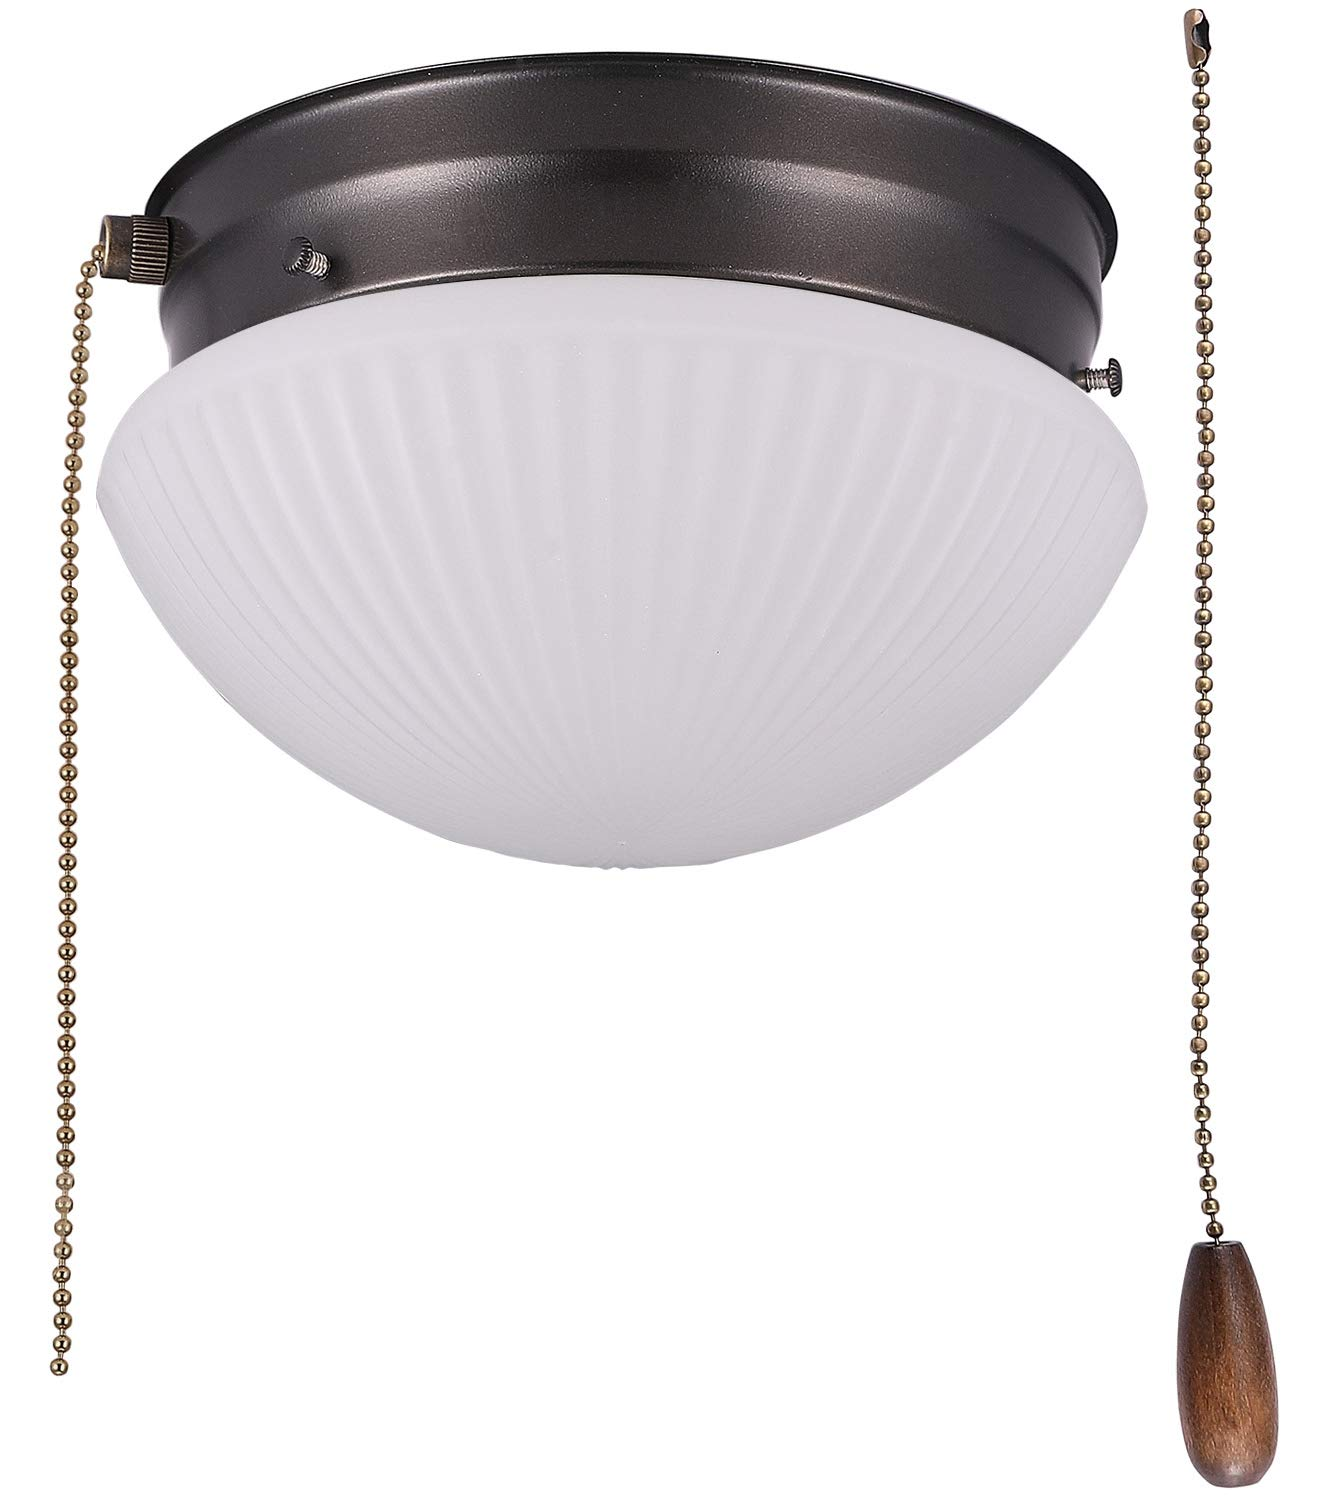 Cloudy Bay LED Flush Mount Ceiling Light with Pull Chain, Glass ...